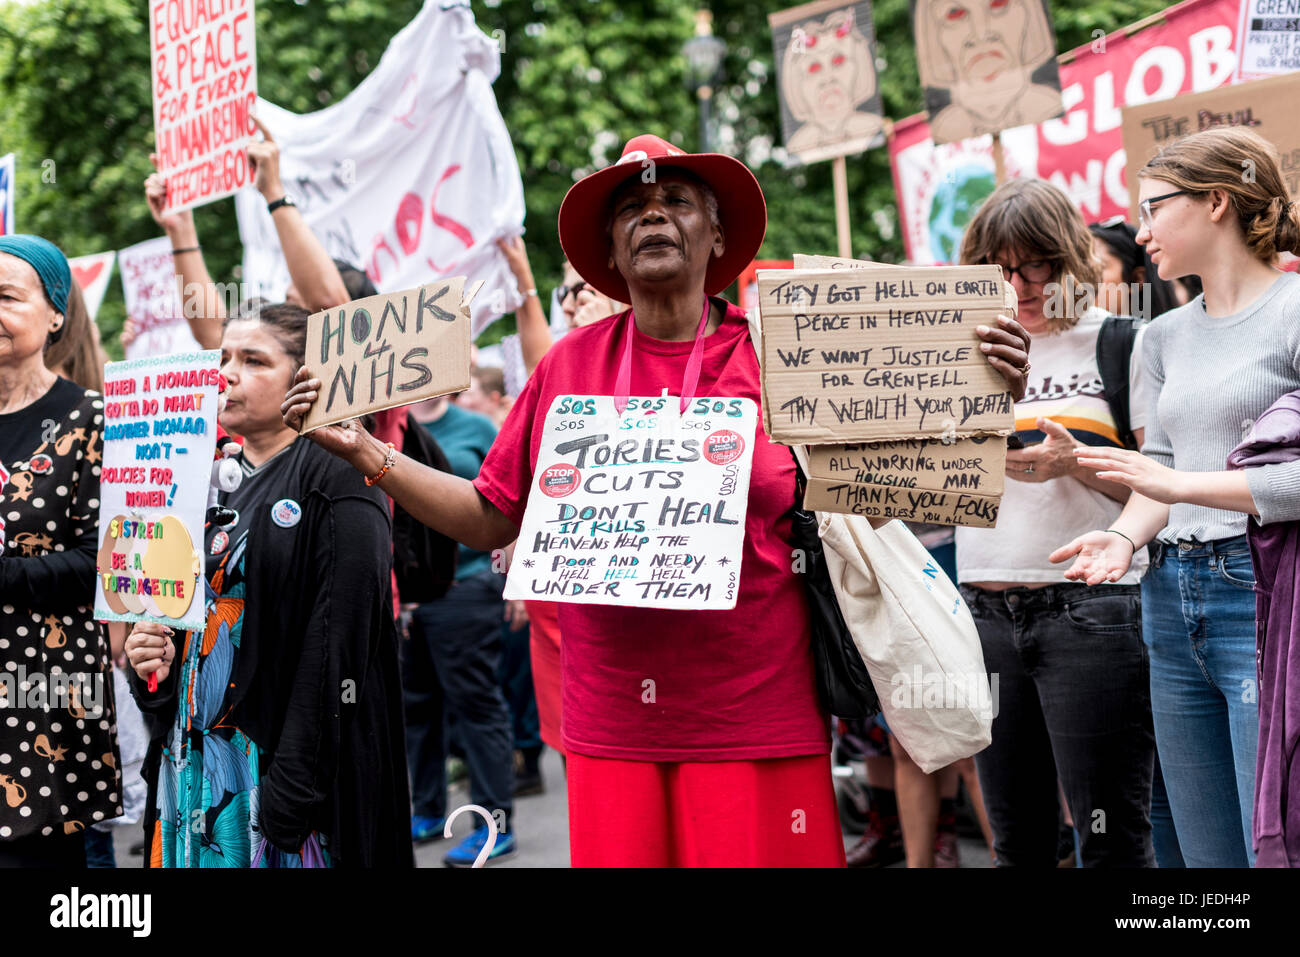 London, UK, 24th June 2017. Young people protest in front of Downing Street against the Tory government which is - Stock Image